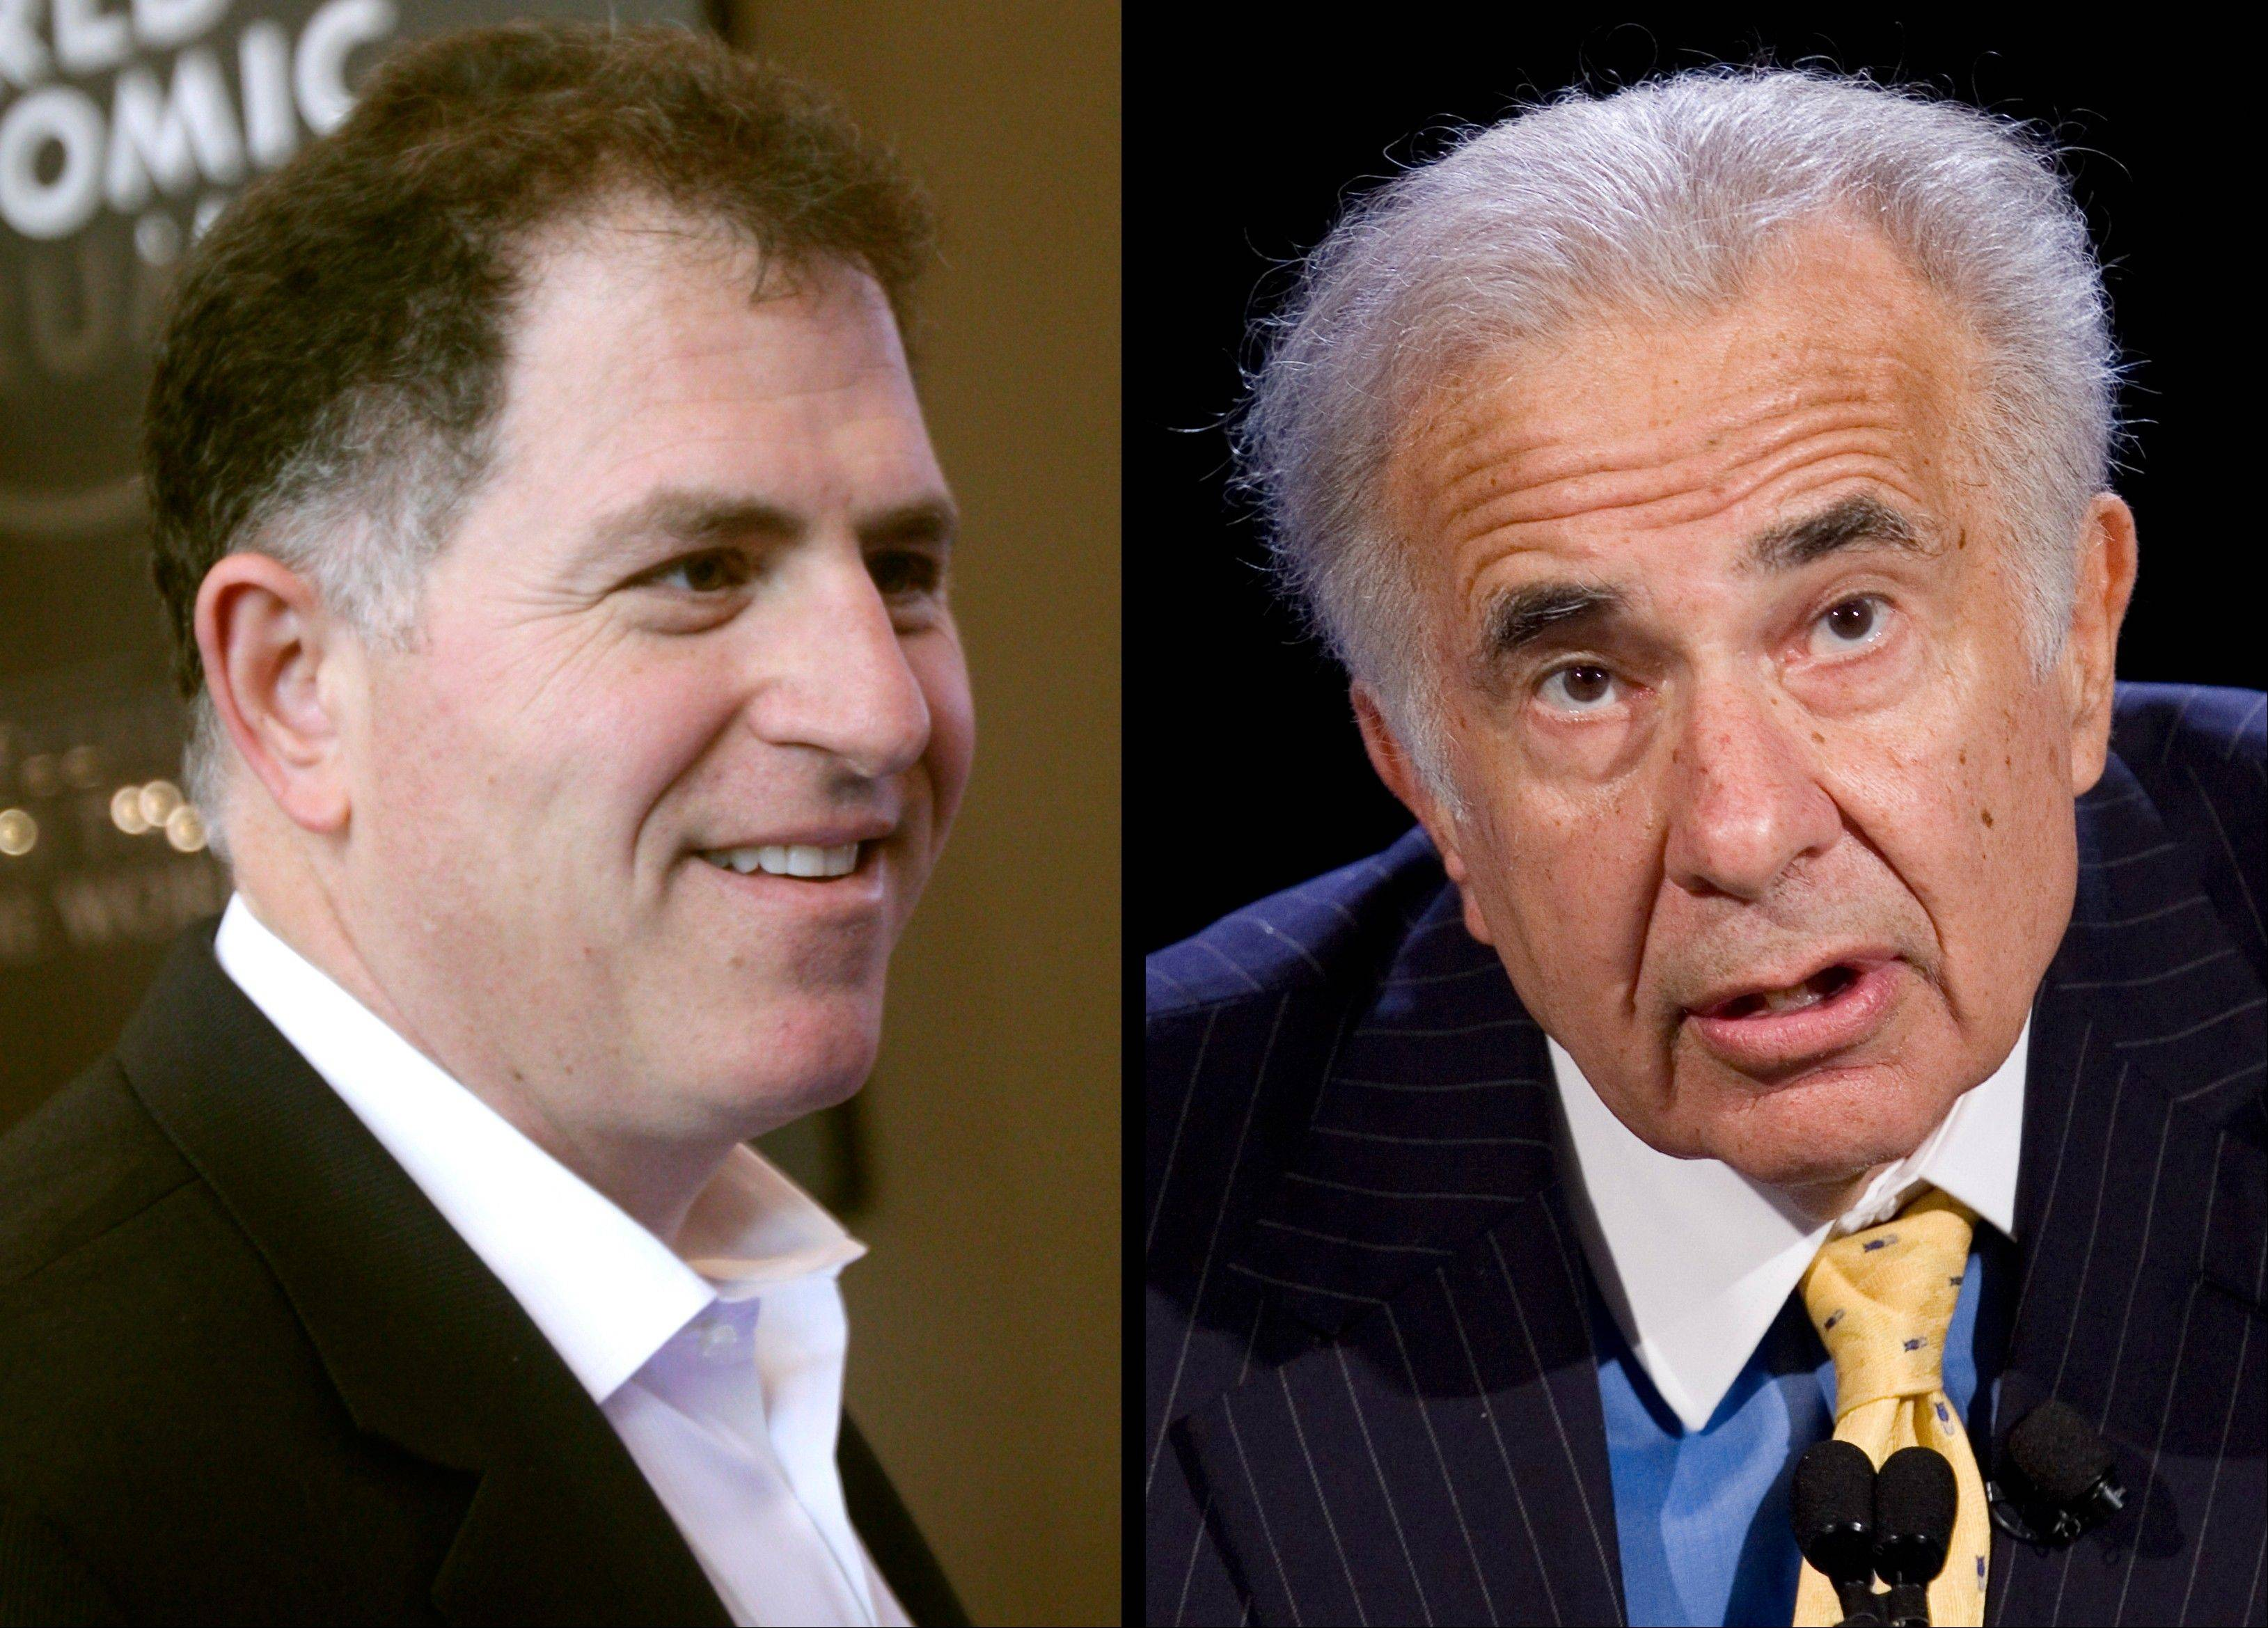 Billionaire investor Carl Icahn, right, is offering Dell shareholders a chance to own a bigger stake in the company in hopes of thwarting an attempt by Dell founder Michael Dell, left, to buy it and take it private.